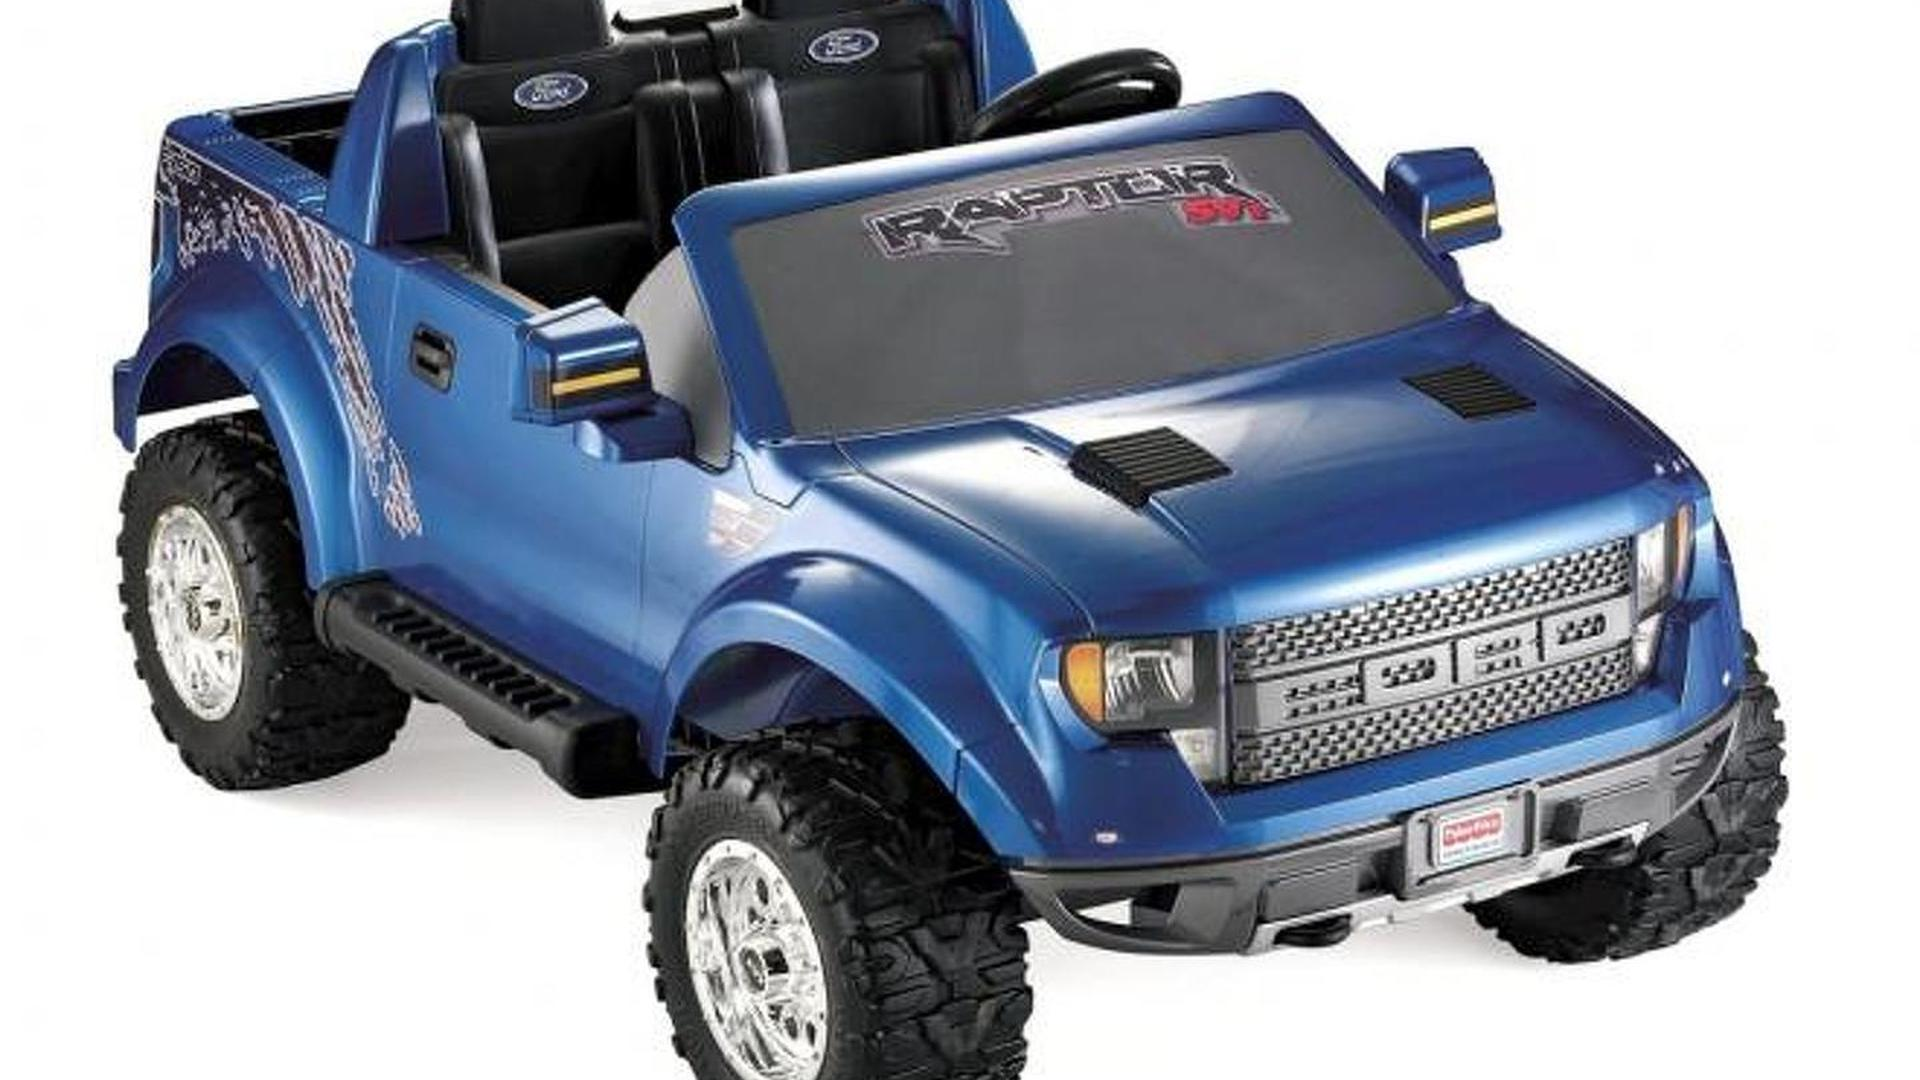 Ford F-150 SVT Raptor overtakes Hummer to become the most popular toy truck